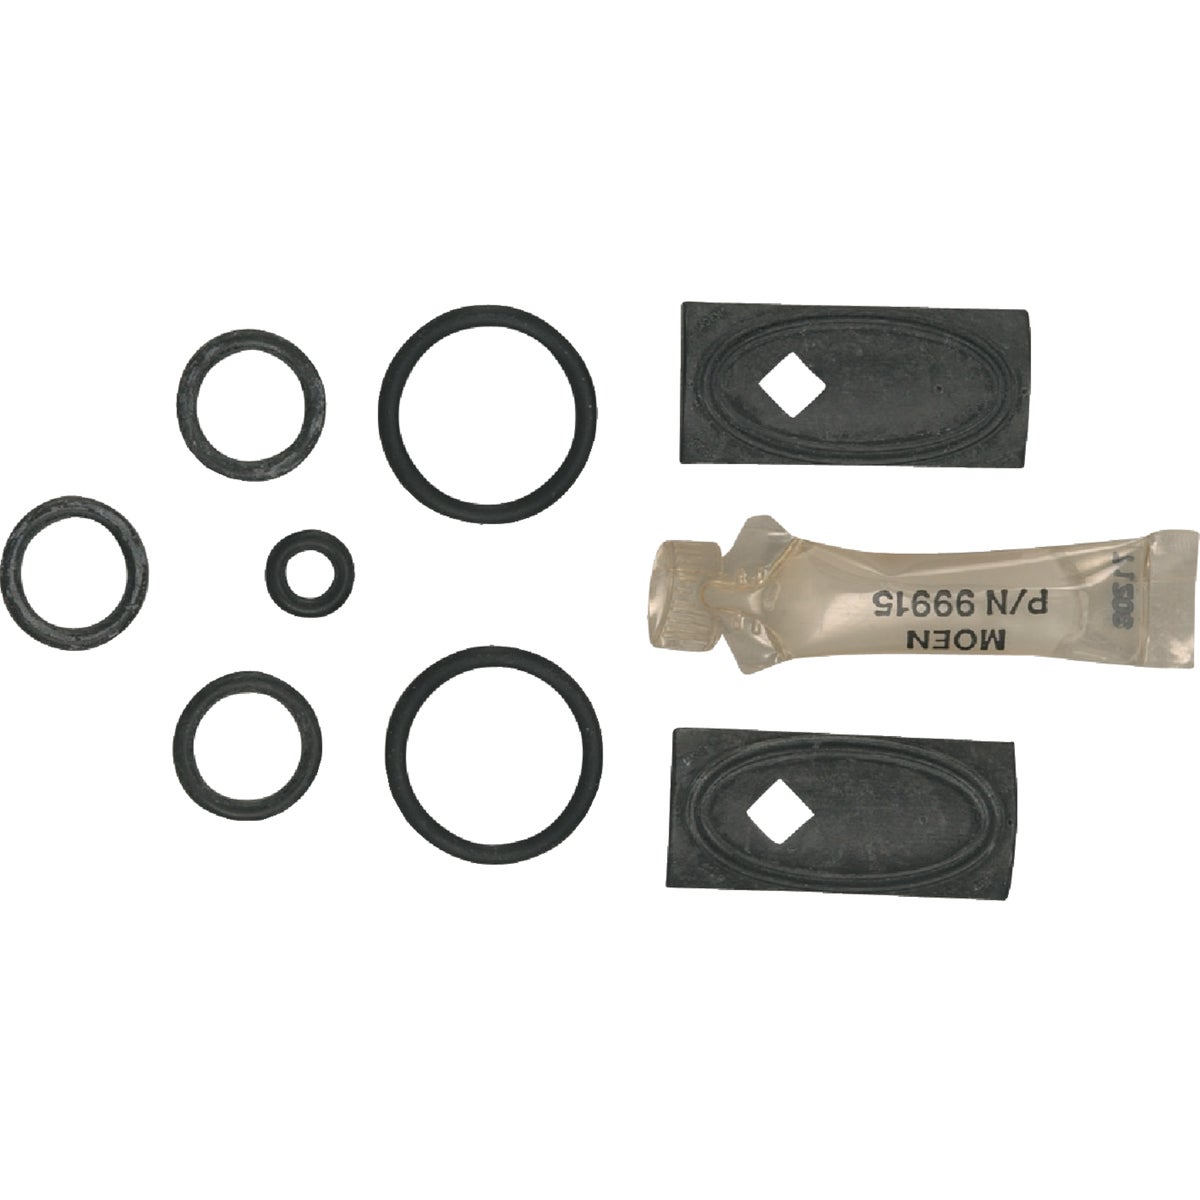 POSI-TEMP REPAIR KIT - 98040 by Moen Inc